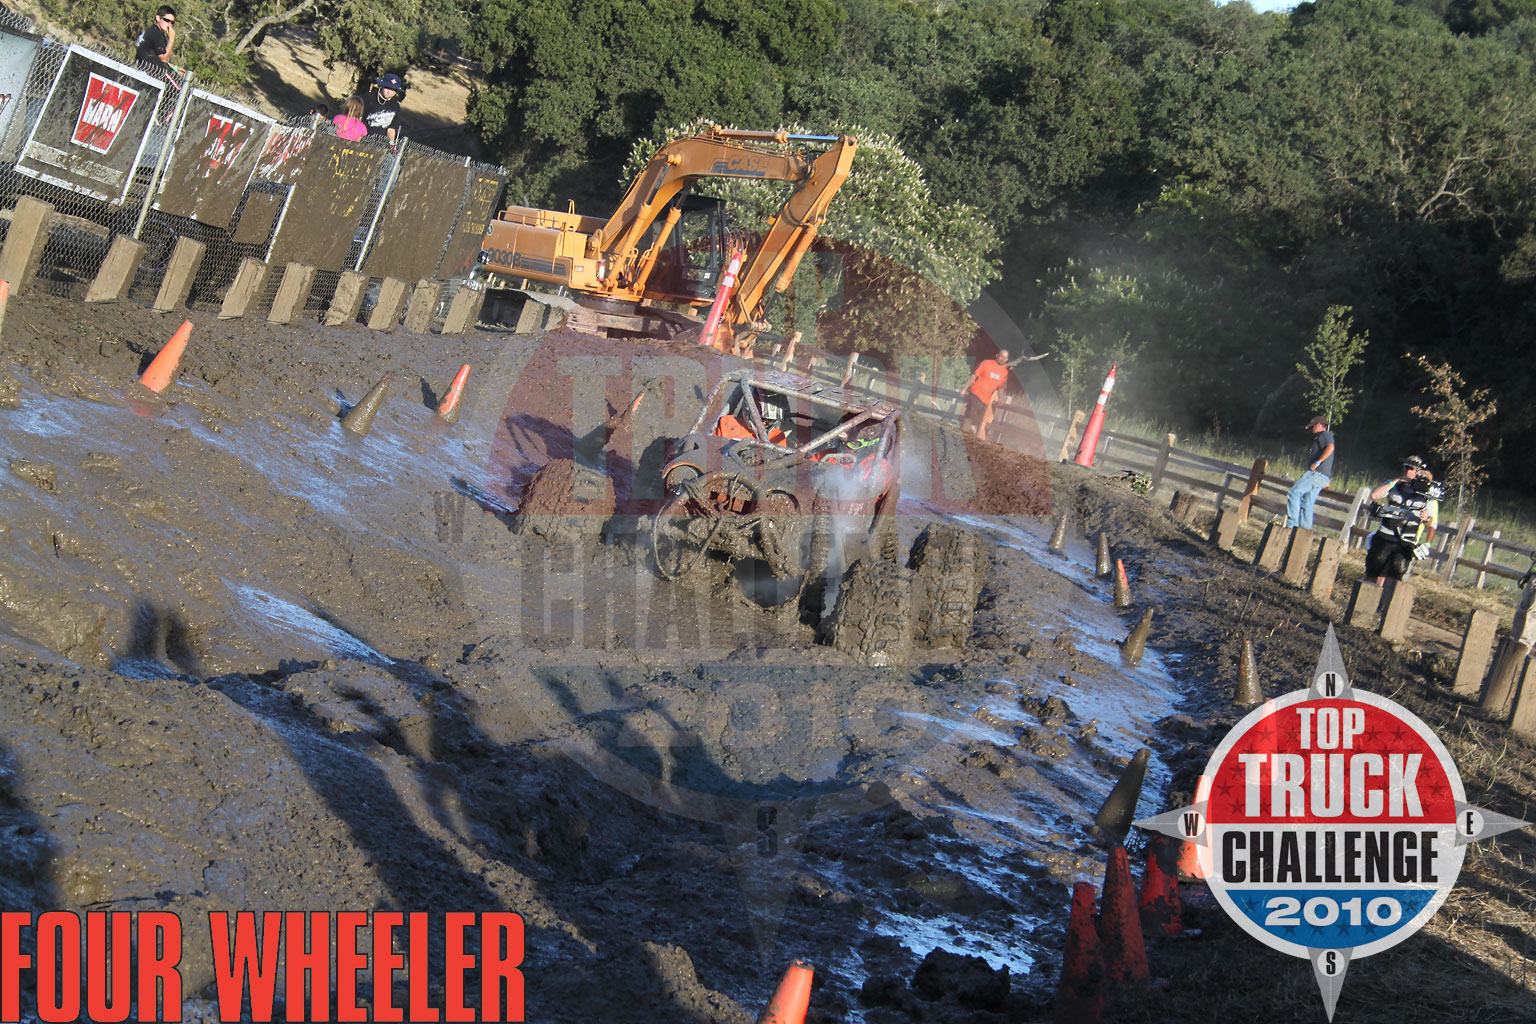 2010 Top Truck Challenge Mud Pit Leo Kuether 2007 Cole Works Fat Girl Buggy